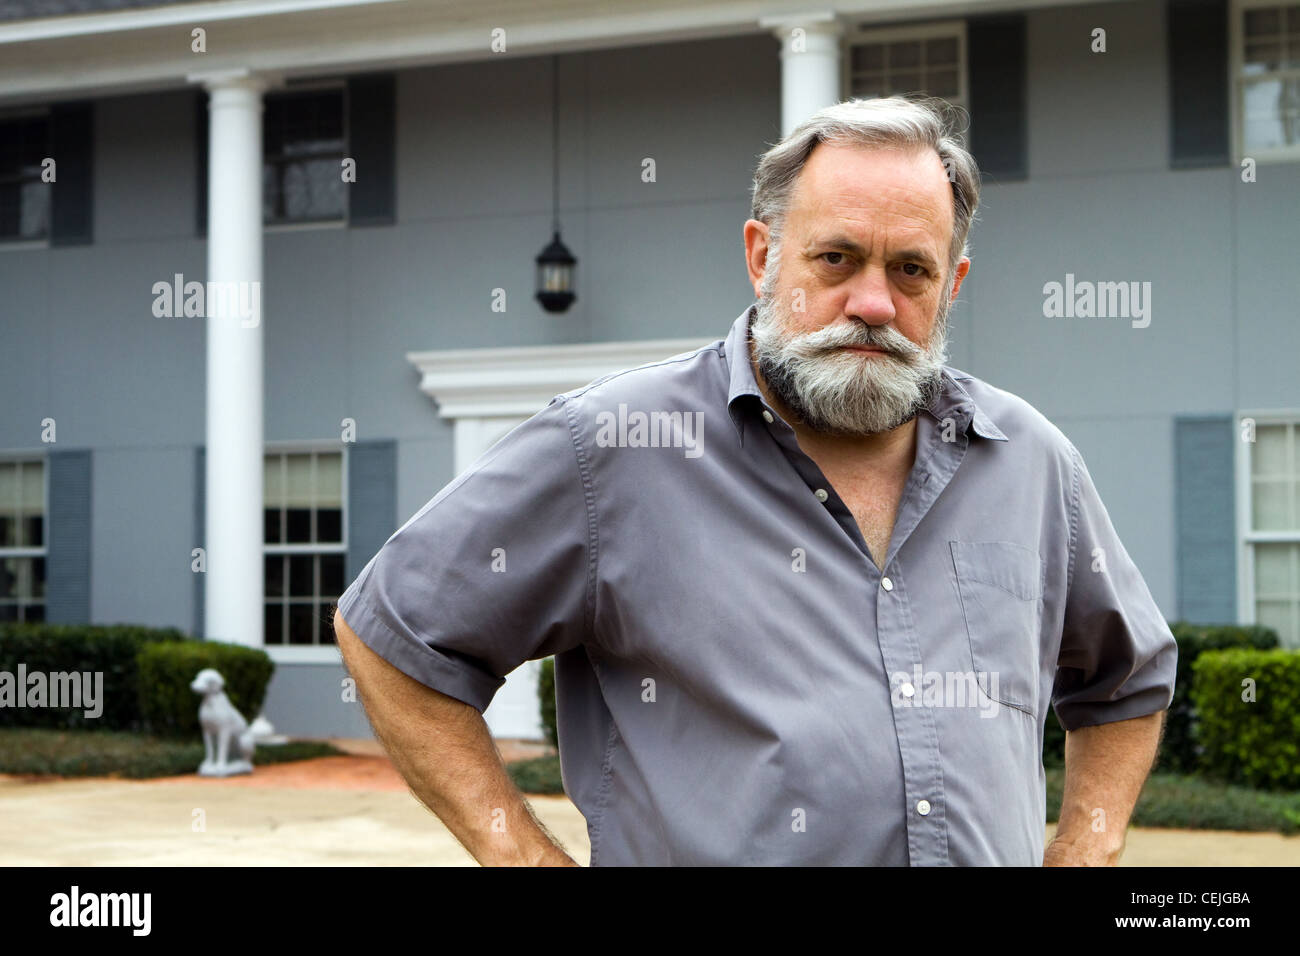 Unhappy homeowner poses in front of his two story columned southern home. - Stock Image